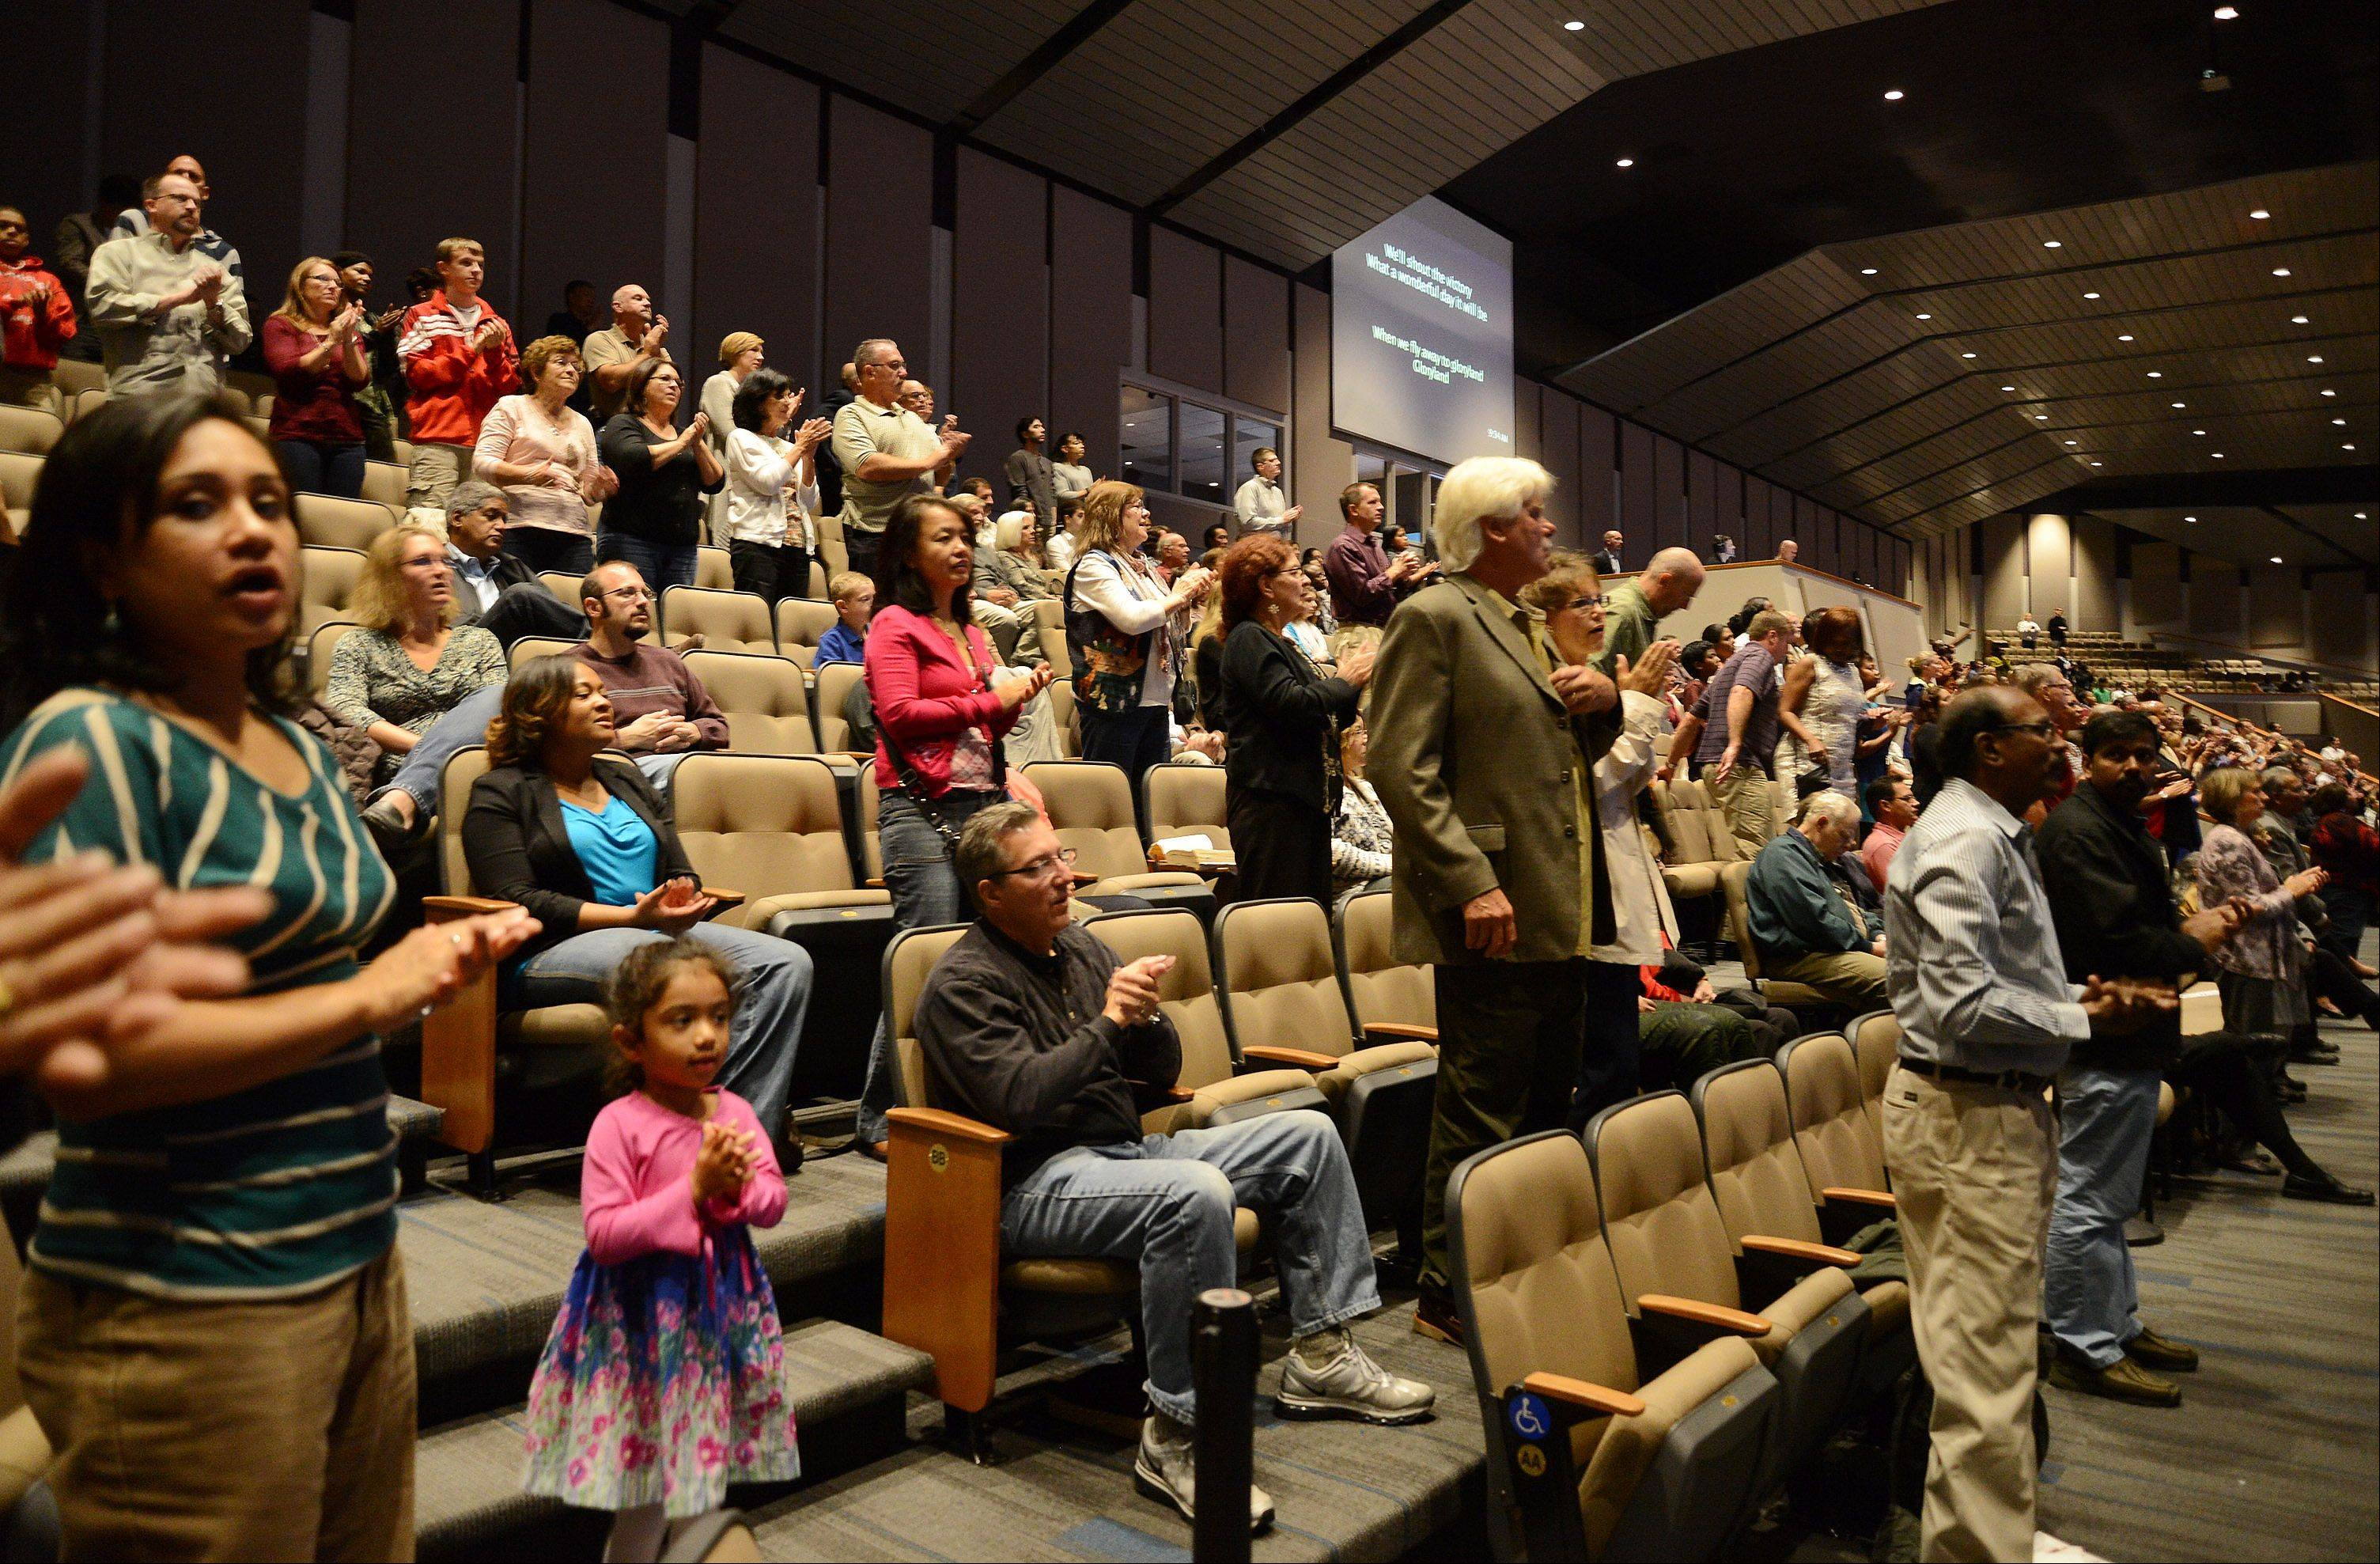 Calvary Church in Naperville opened its newly renovated auditorium after more than five months of construction. The choir and orchestra lead the congregation through a history of worship.